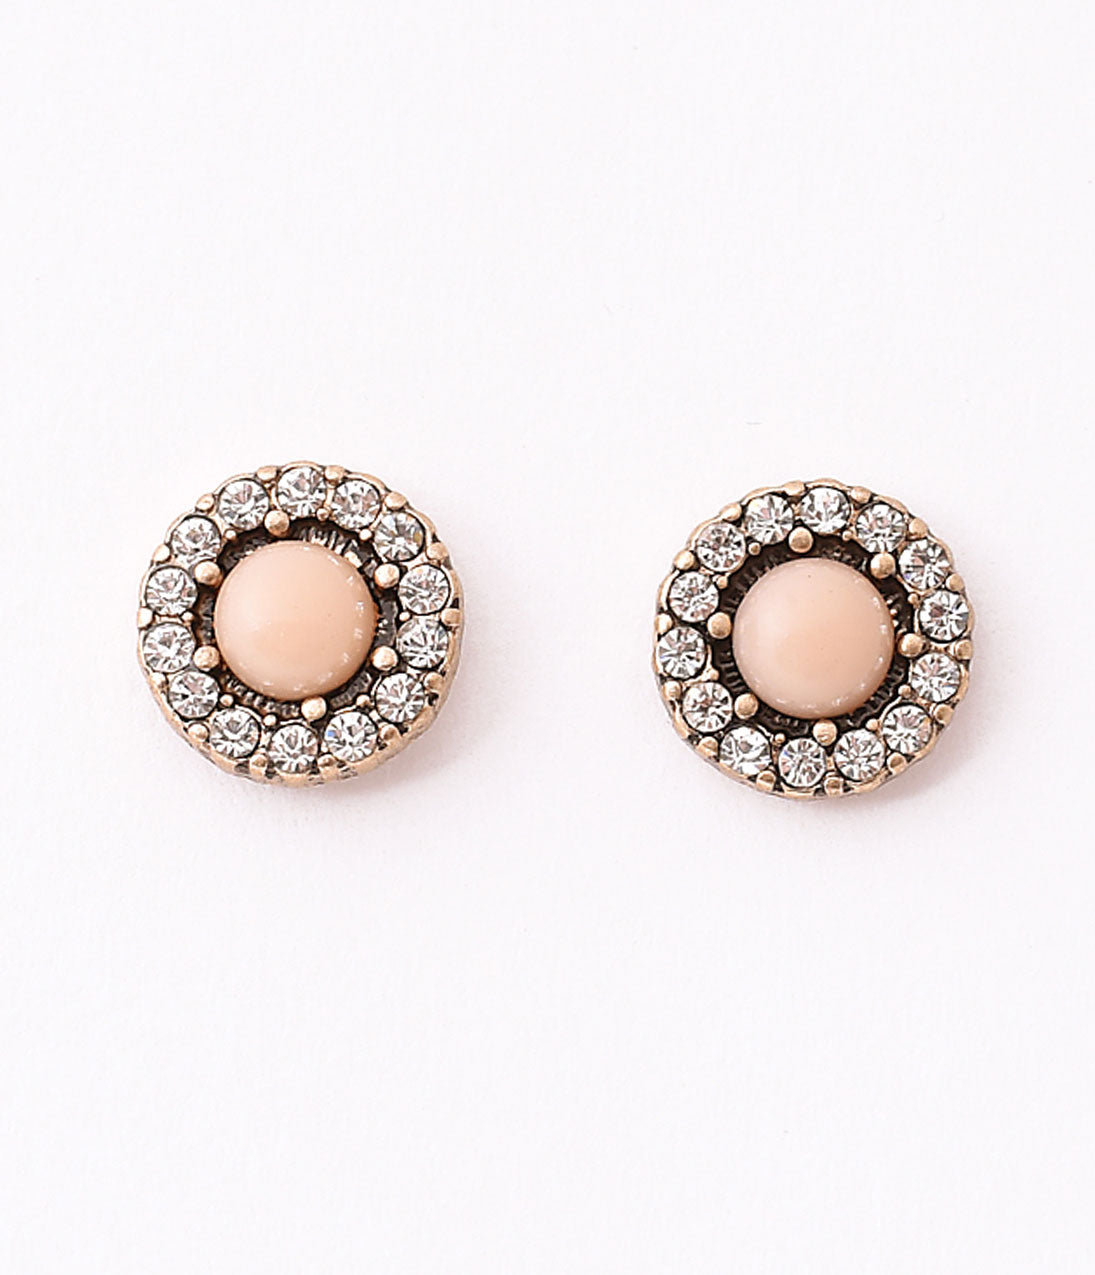 50s Jewelry: Earrings, Necklace, Brooch, Bracelet Vintage Style Pink Pearl  Silver Rhinestone Stud Earrings $16.00 AT vintagedancer.com